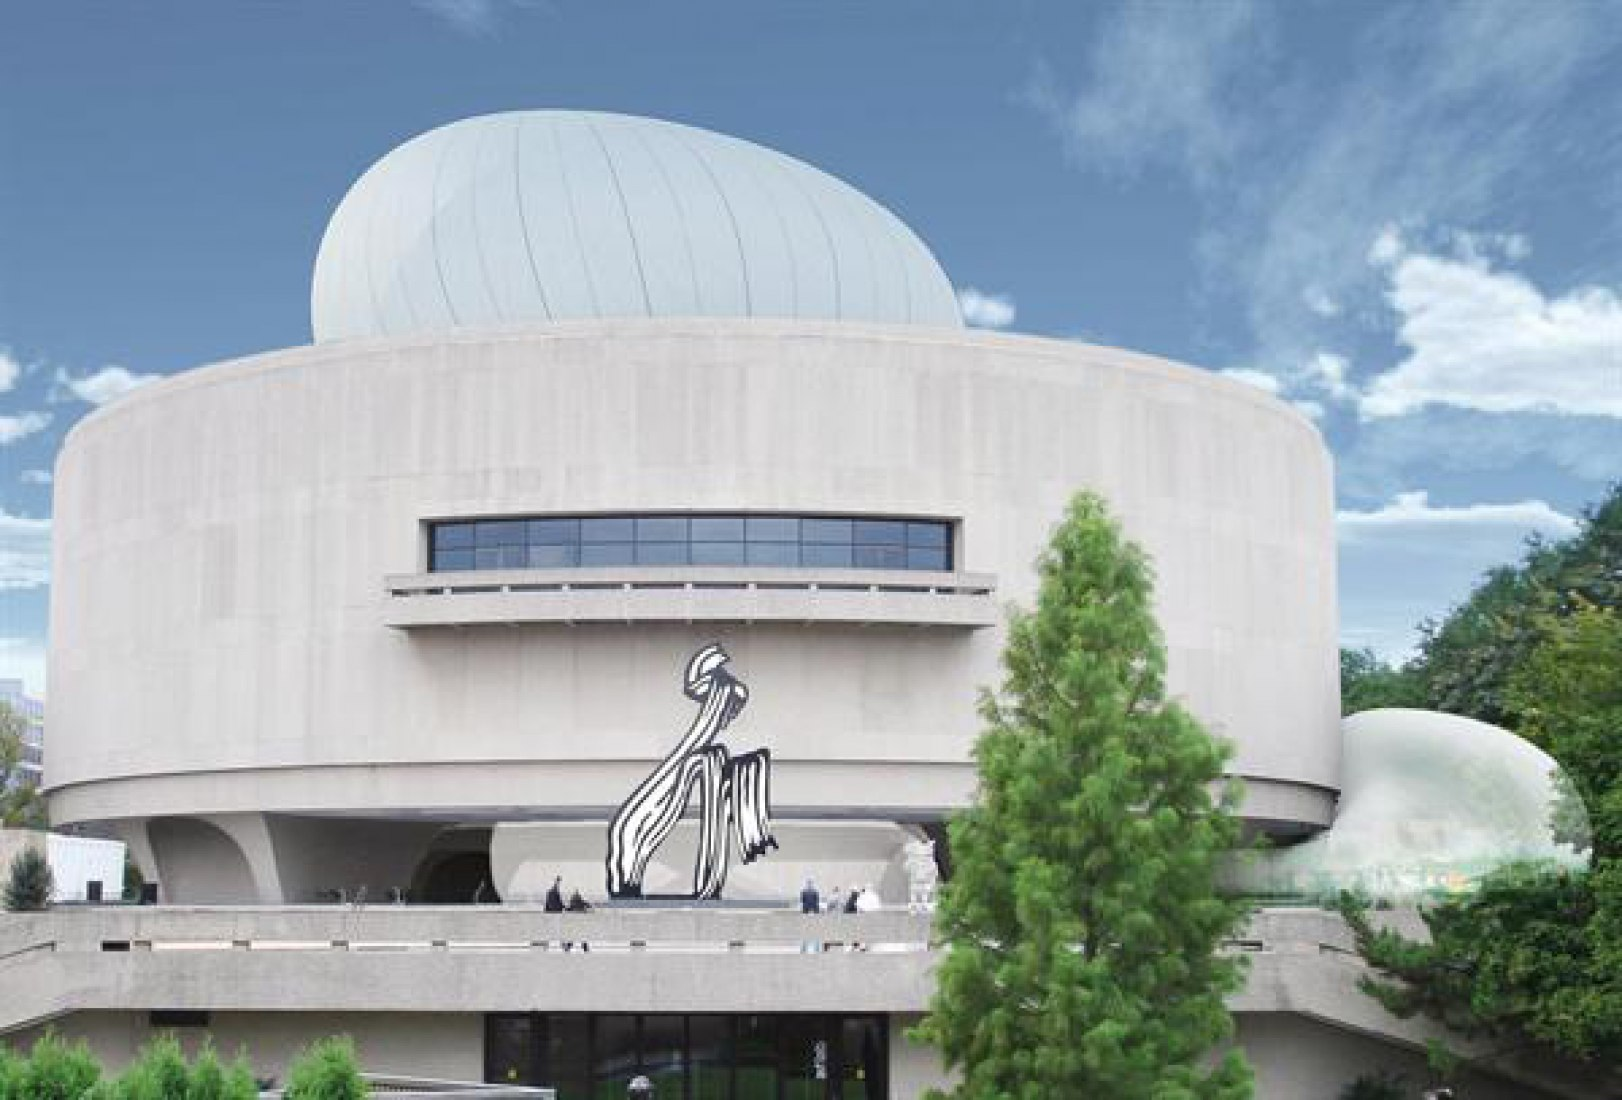 Exterior view project. The Hirshhorn Bubble project by Diller Scofidio & Renfro.